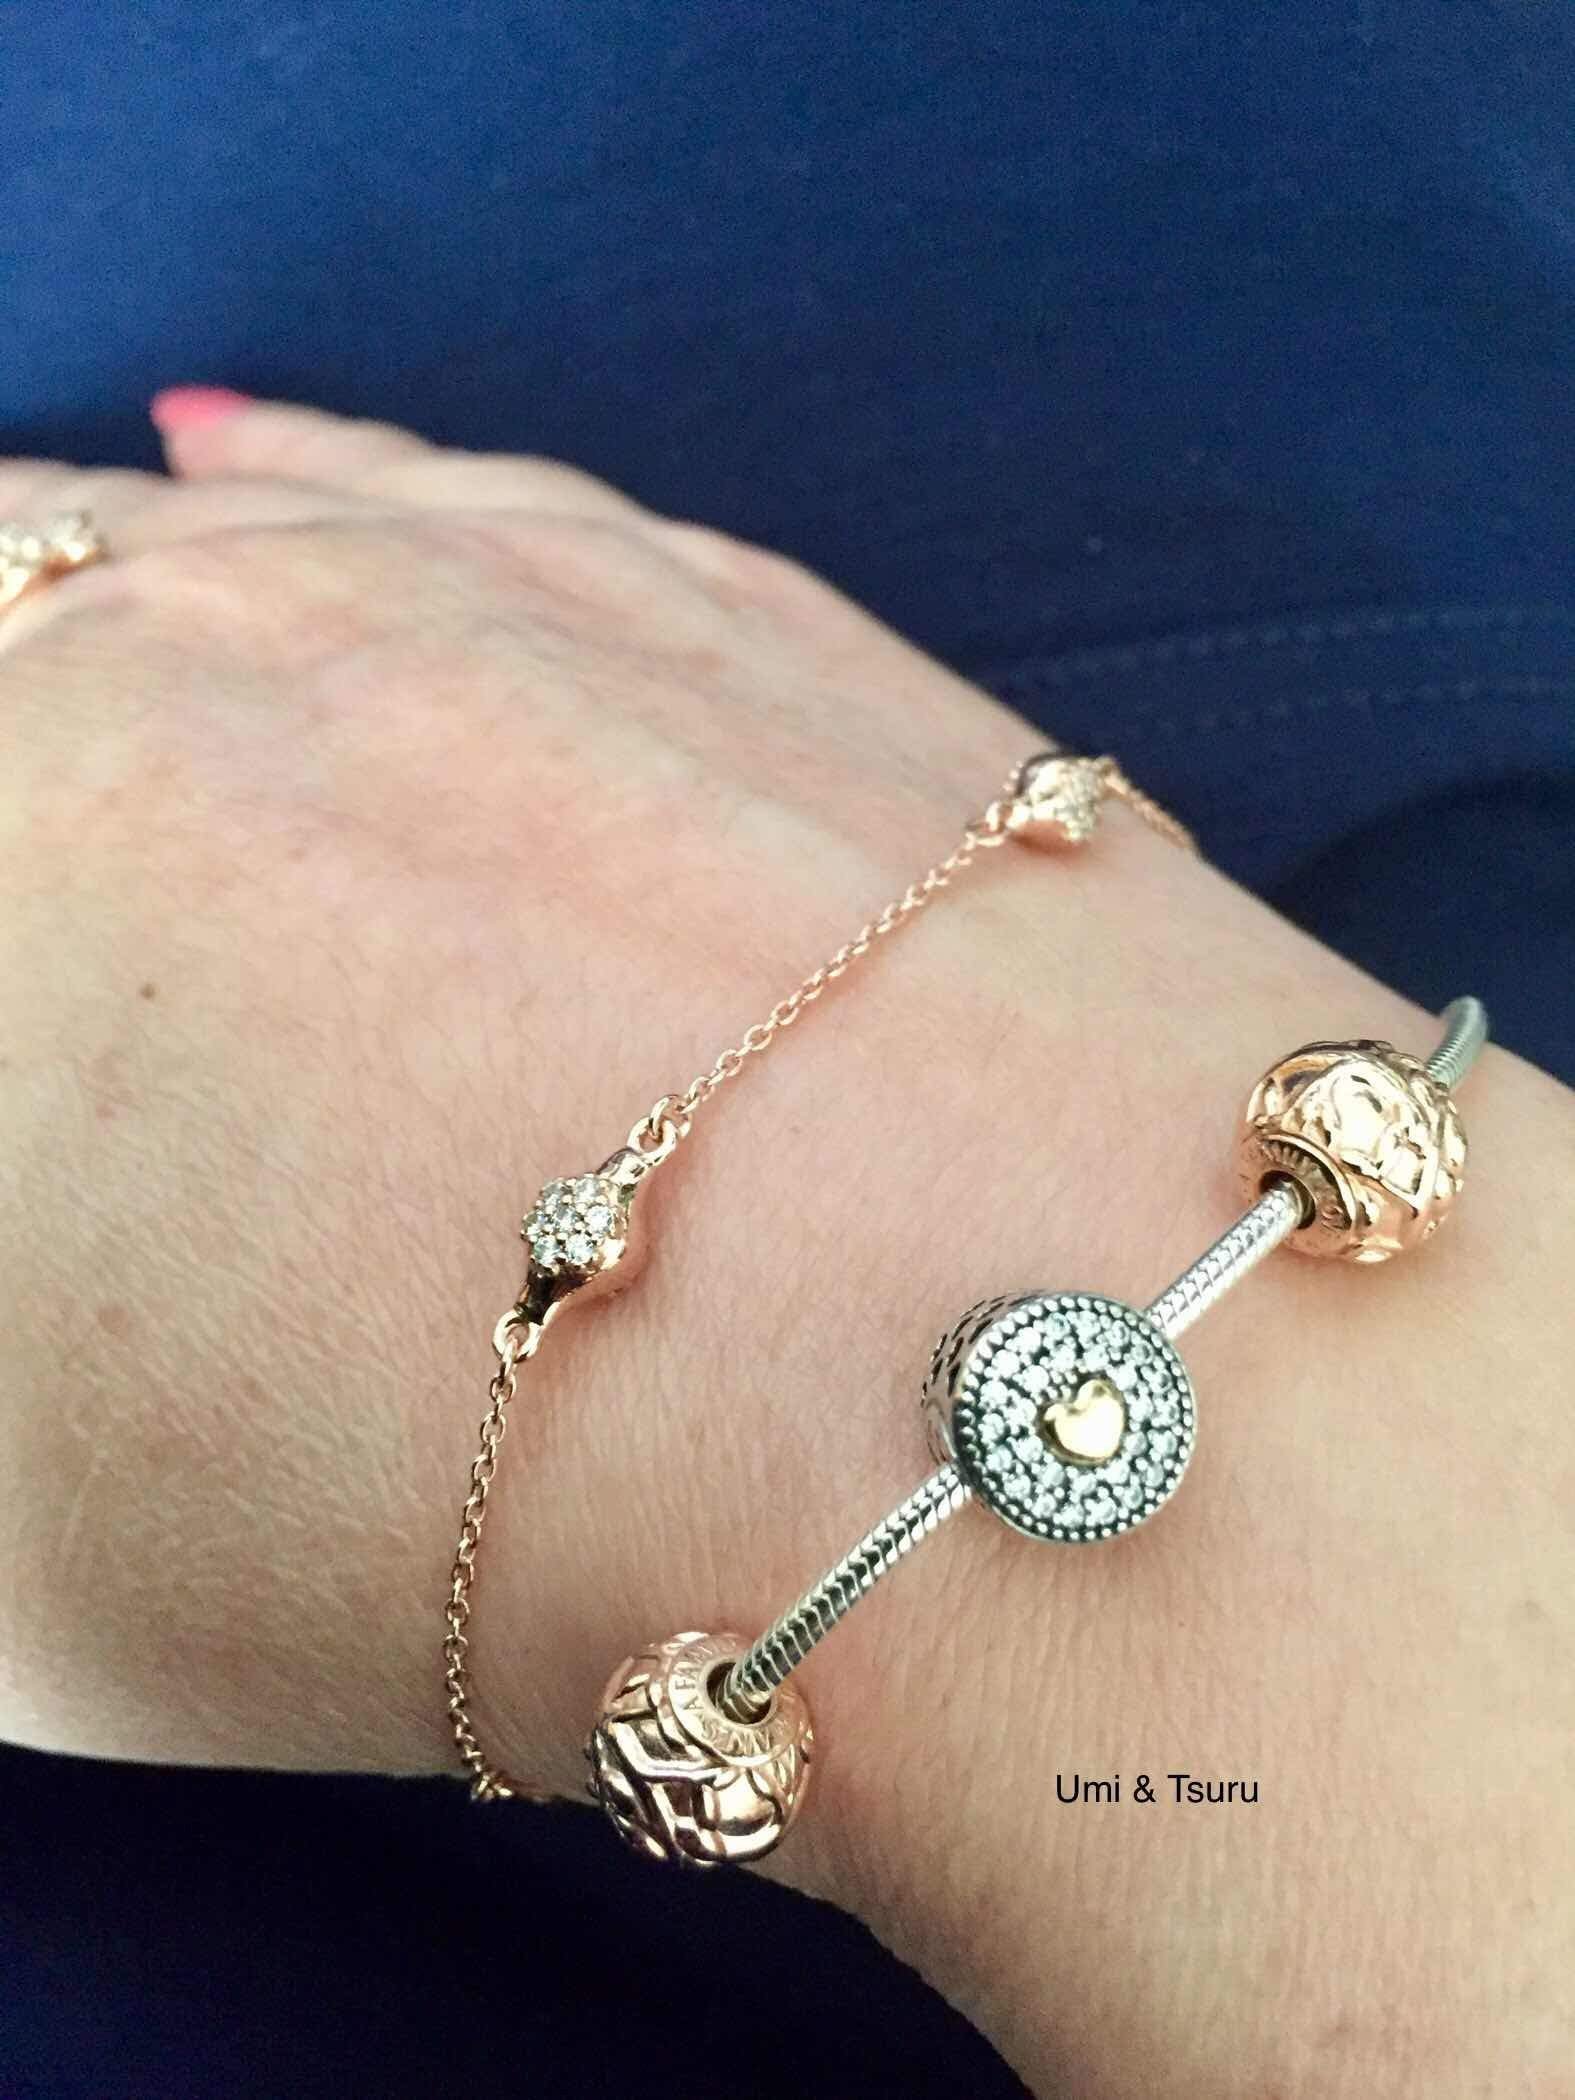 8c96f21e9 This week I am pairing the Pandora Rose Modern Lovepods bracelet with the  Pandora Essence. Charms on the Essence are the Pandora Rose Love makes a  family ...